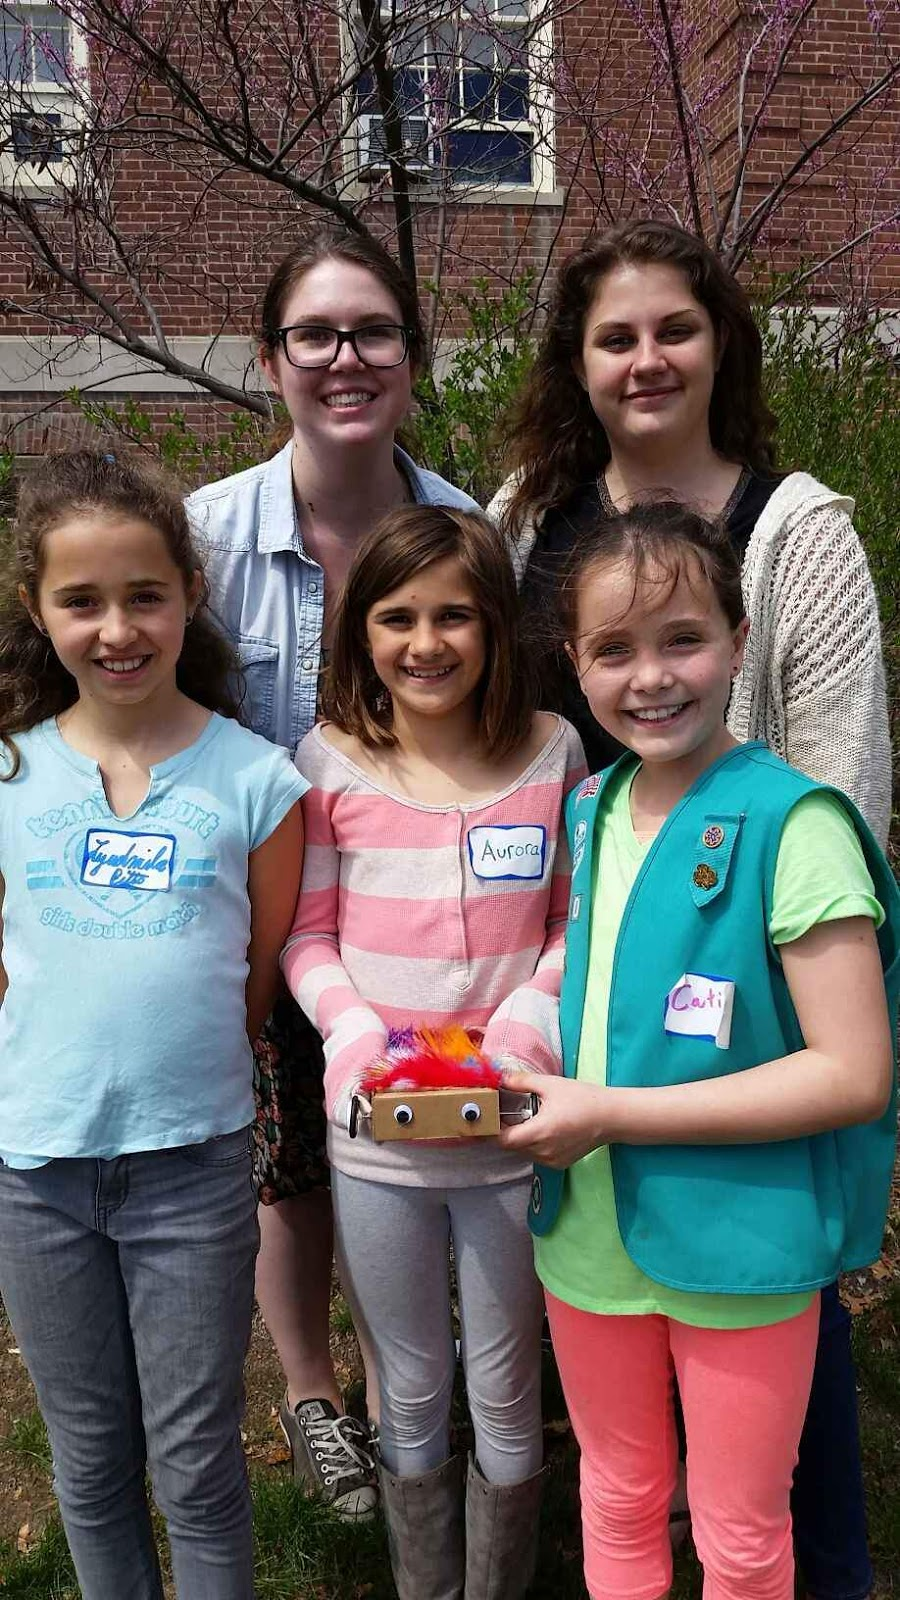 north amherst girls Find a great location for a girl's birthday party in north amherst, massachusetts search our birthday venue database for top birthday party locations in north amherst, massachusetts for your child.